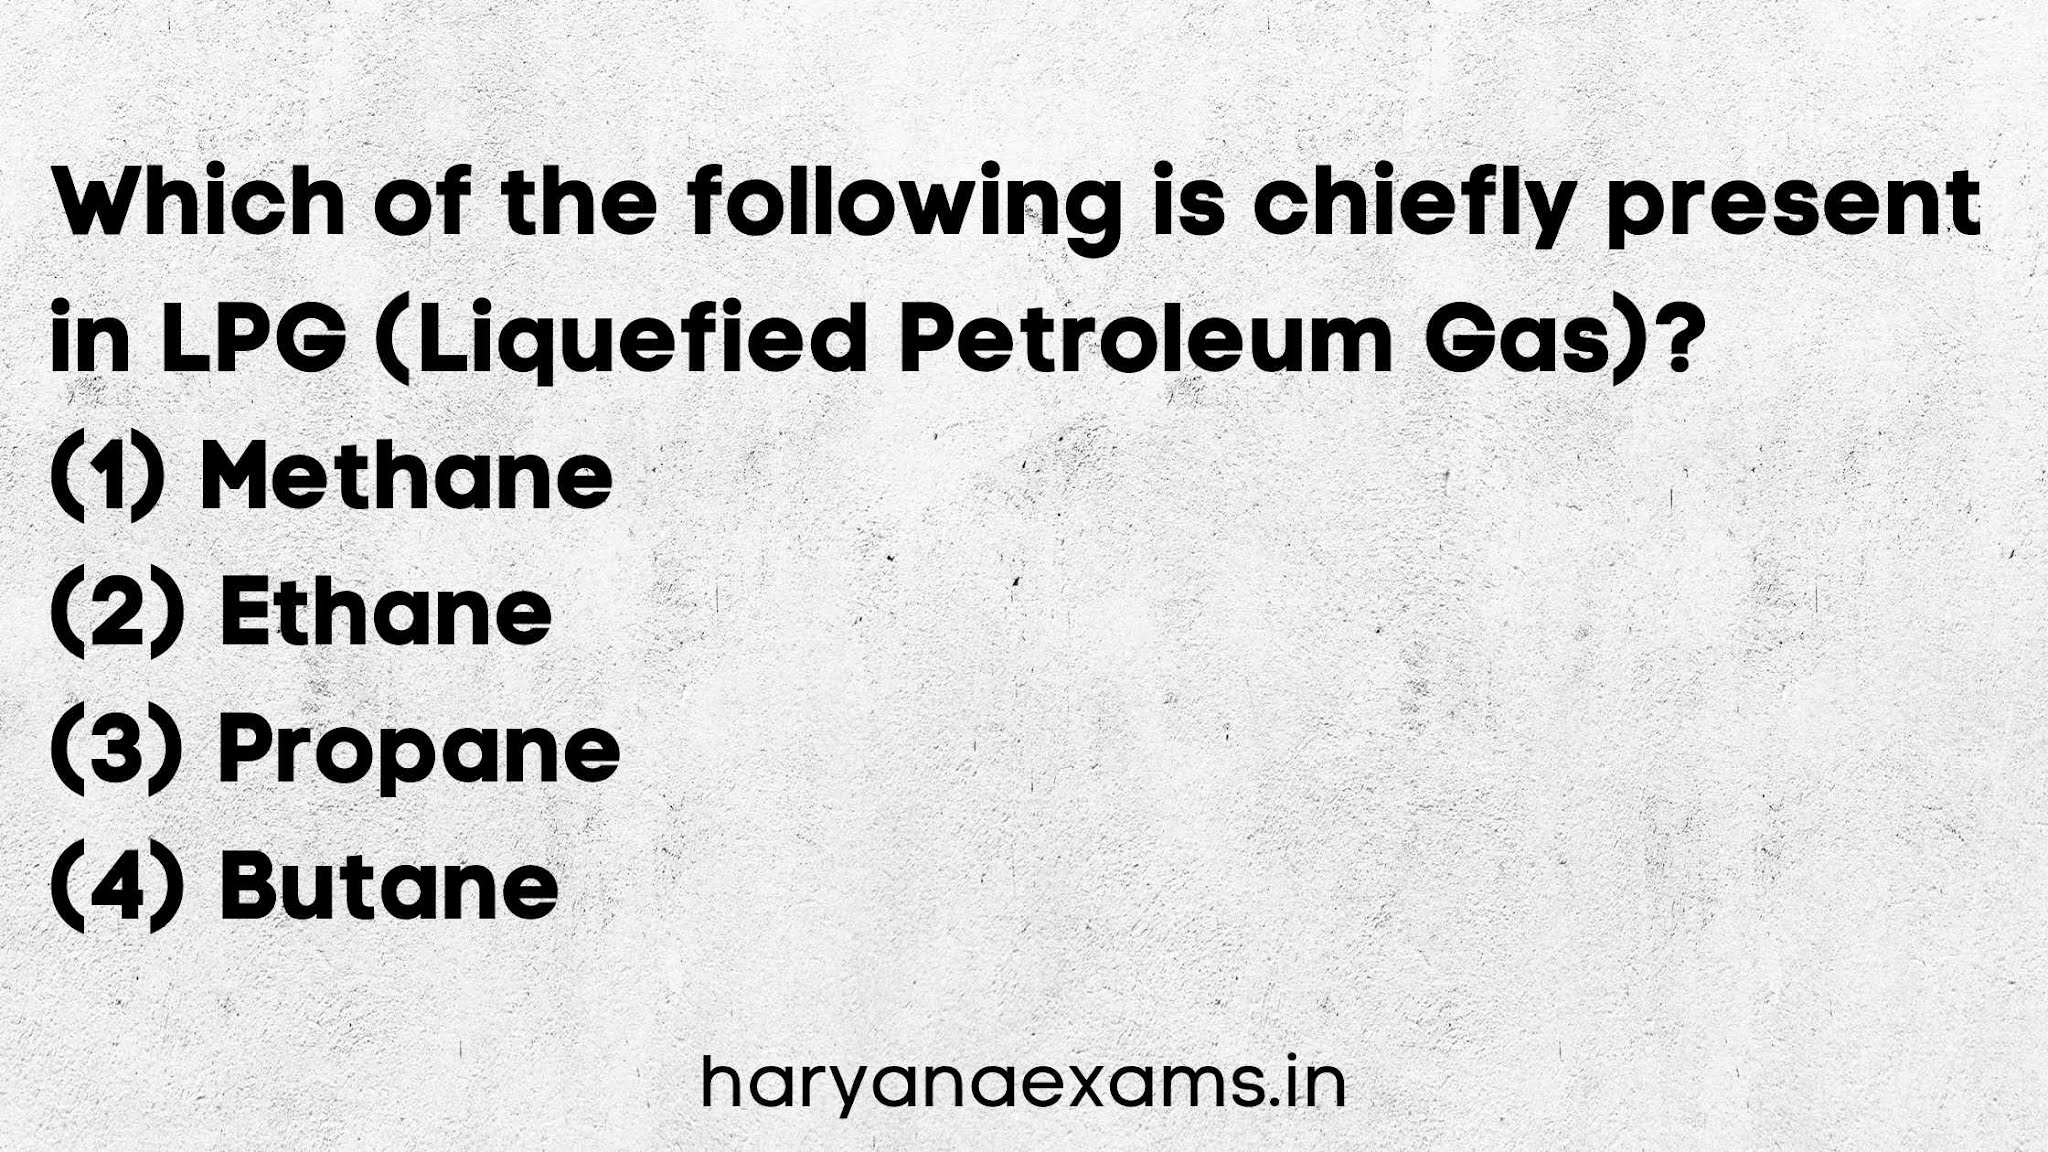 Which of the following is chiefly present in LPG (Liquefied Petroleum Gas)?   (1) Methane   (2) Ethane   (3) Propane   (4) Butane